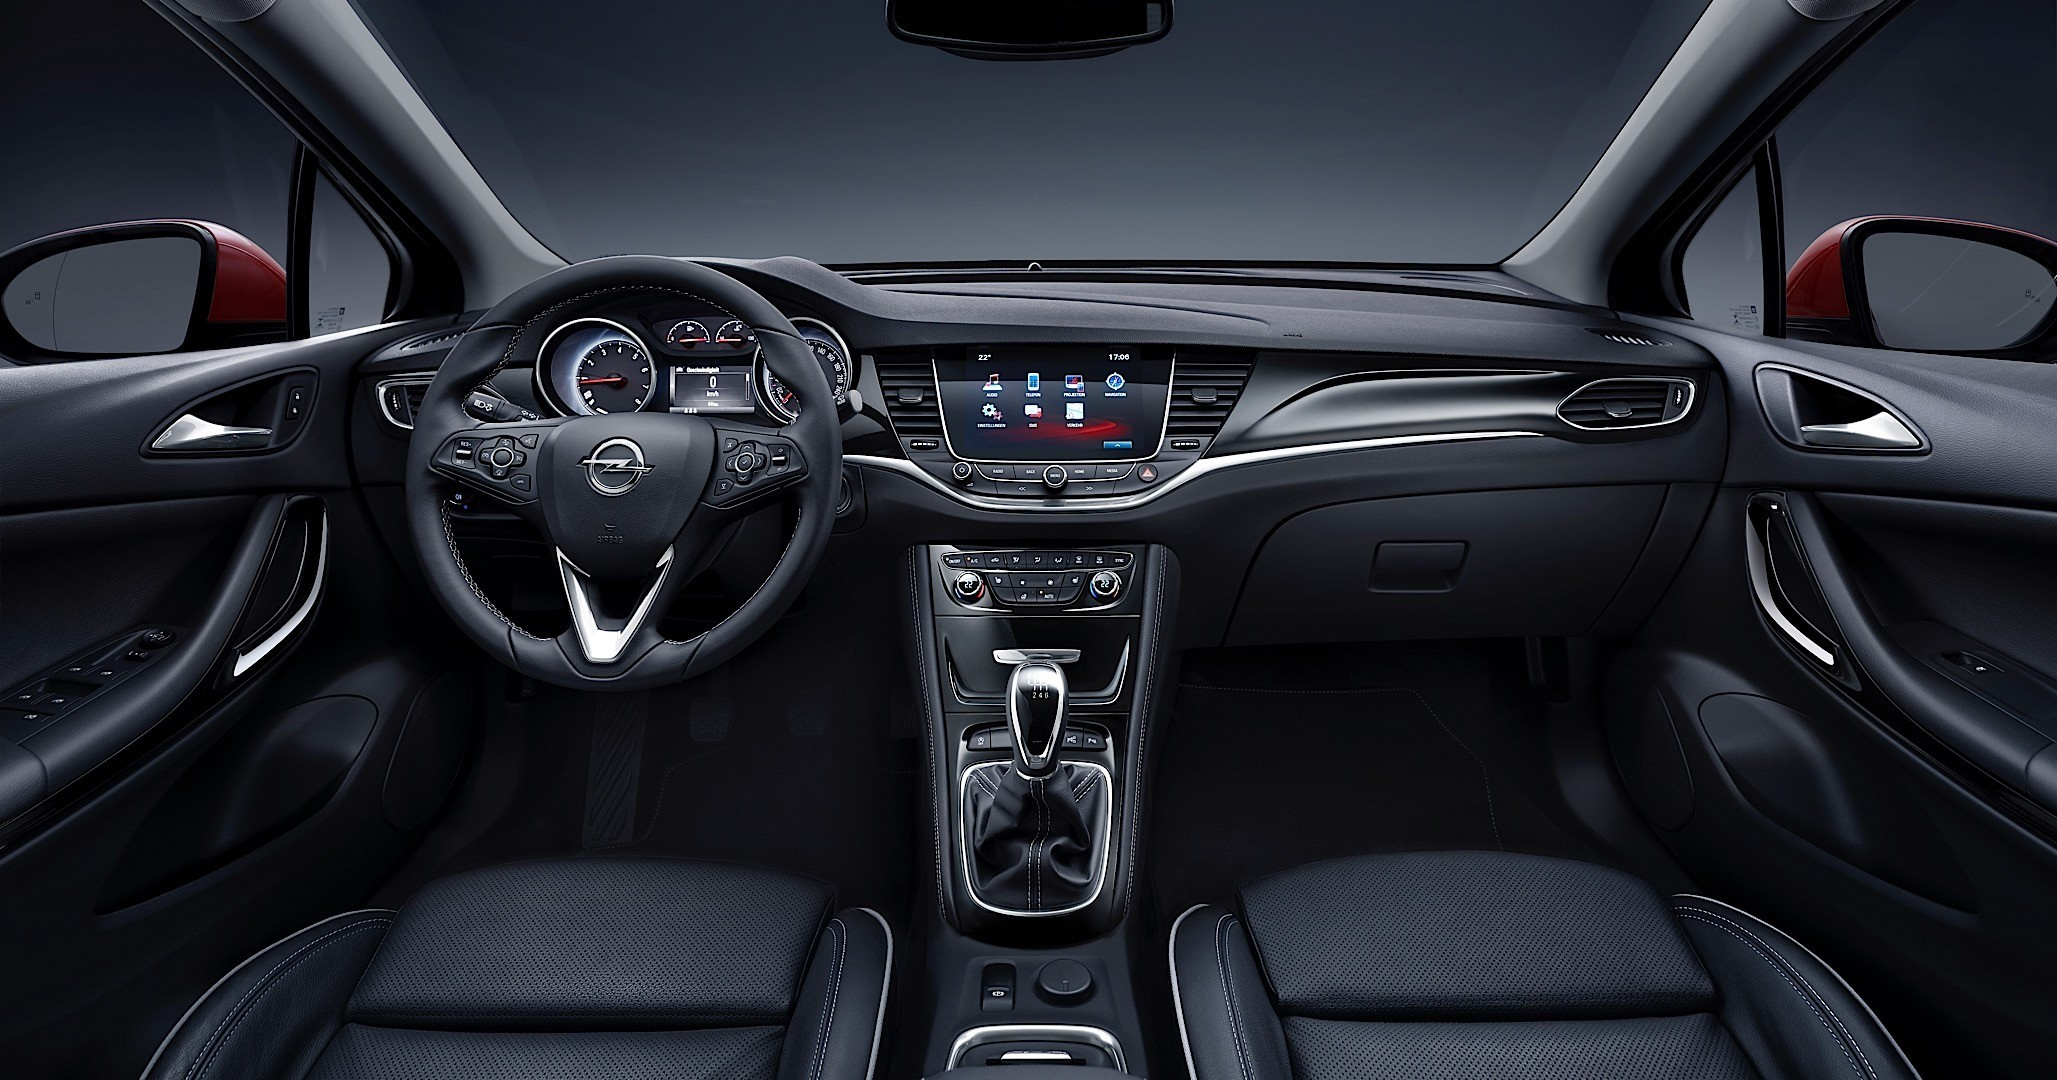 2017 Opel Astra Sports Tourer interior photos